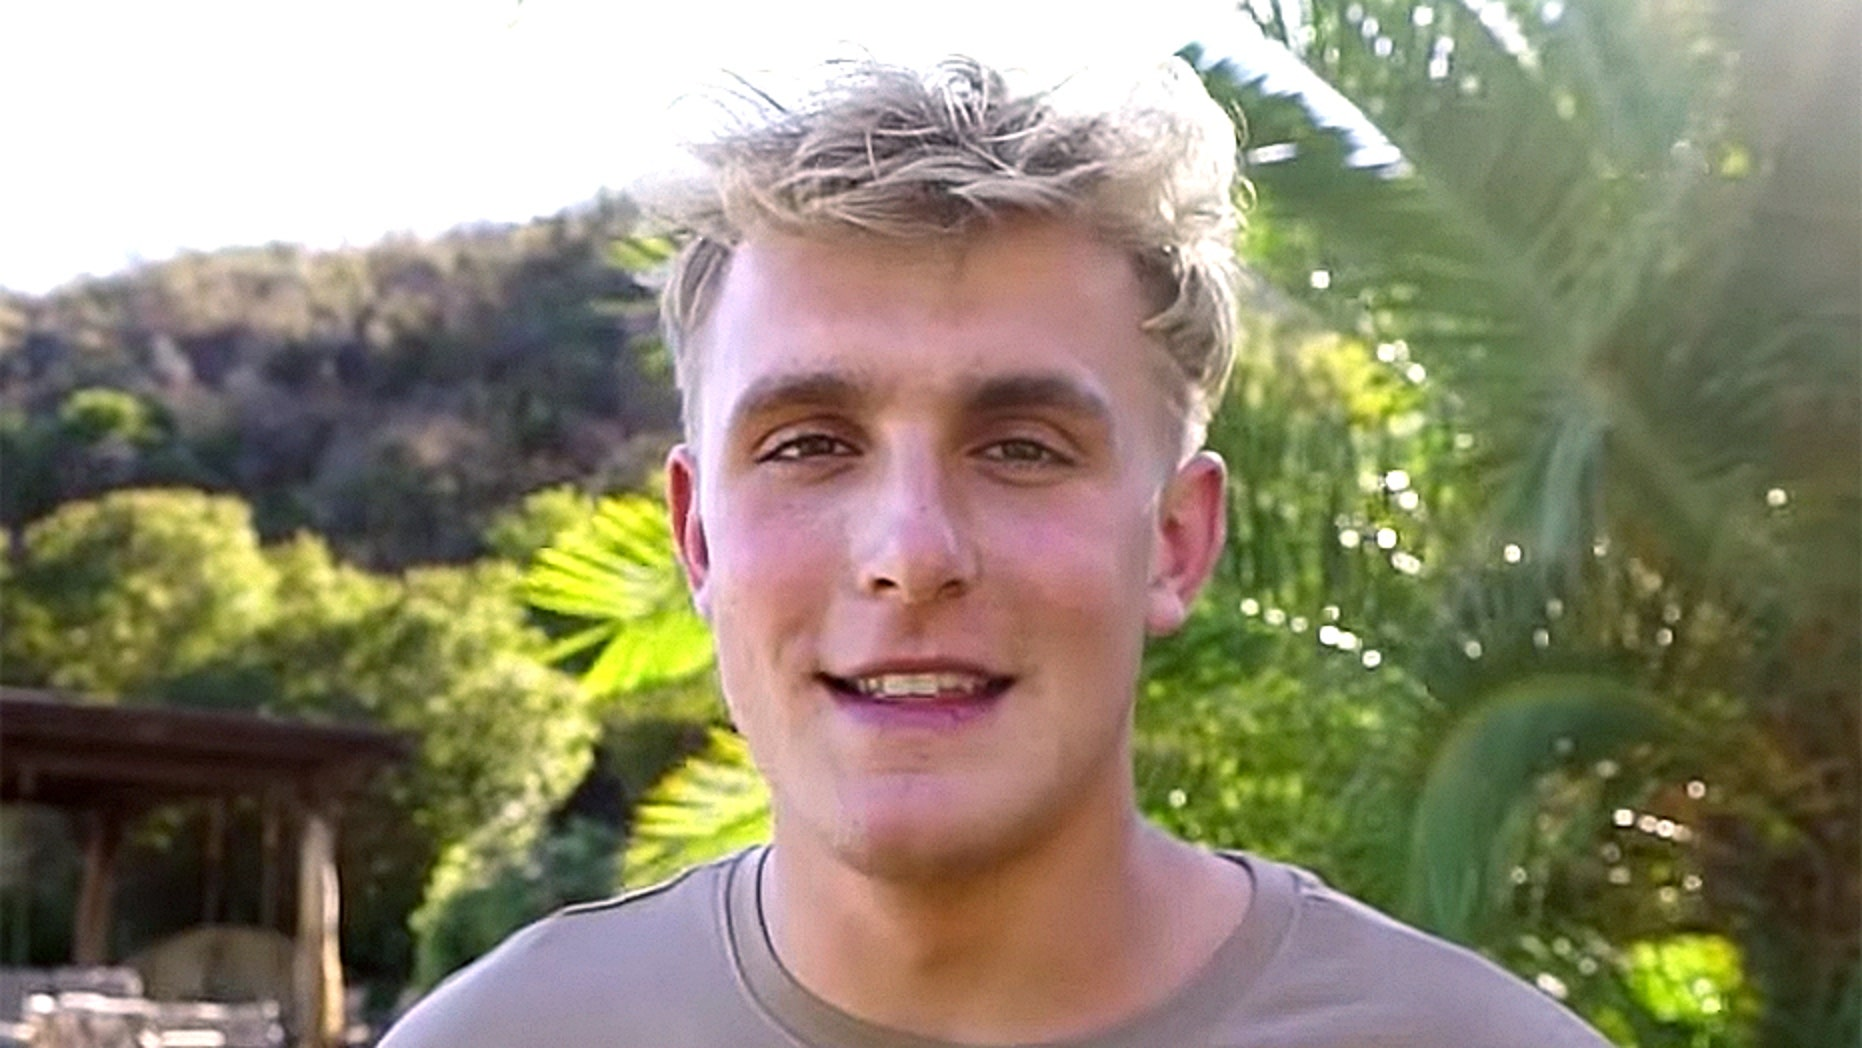 Jake Paul and his team were reportedly booted from a North Carolina amusement park.